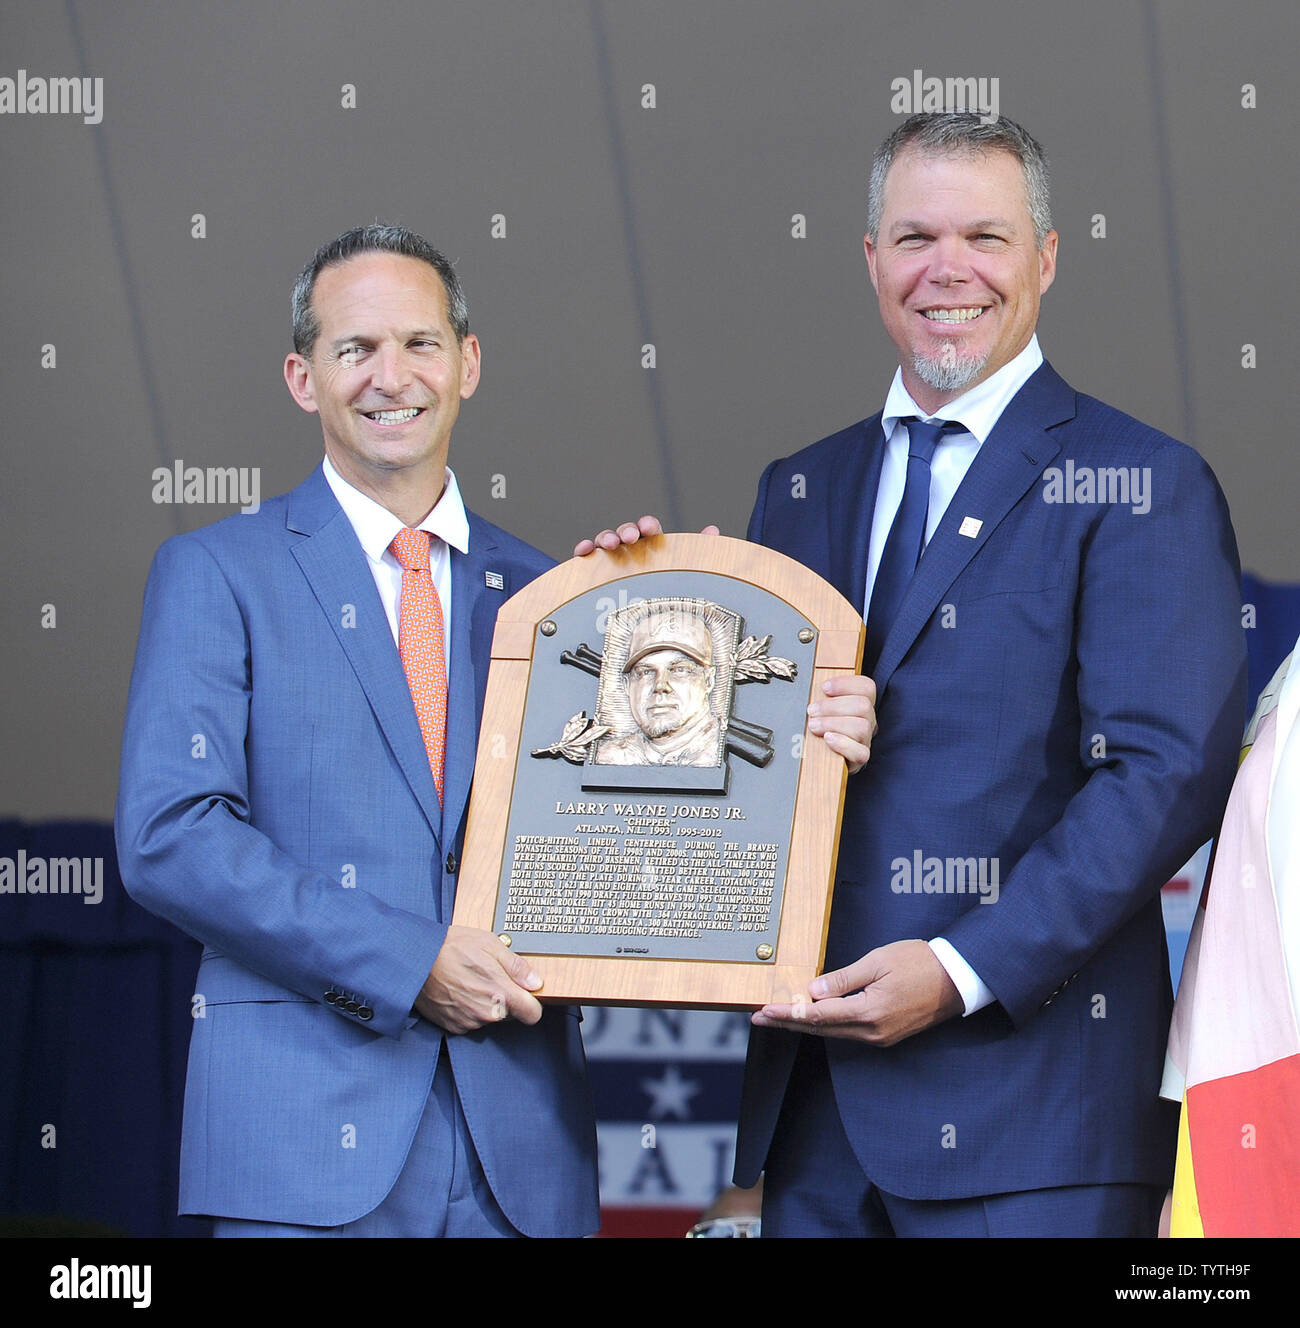 Atlanta Braves Chipper Jones  and President of the Baseball Hall of Fame Jeff Idelson holds his plaque before he delivers his Baseball Hall of Fame induction speech at the Clark Sports Center in Cooperstown, NY on July 29, 2018.  A record 60 Hall of Famers are scheduled to be in Central New York to honor Vladimir Guerrero, Trevor Hoffman, Chipper Jones, Jack Morris, Jim Thome and Alan Trammell at the National Baseball Hall of Fame and Museum during Hall of Fame Weekend on July 27-30.     Photo by George Napolitano/UPI - Stock Image